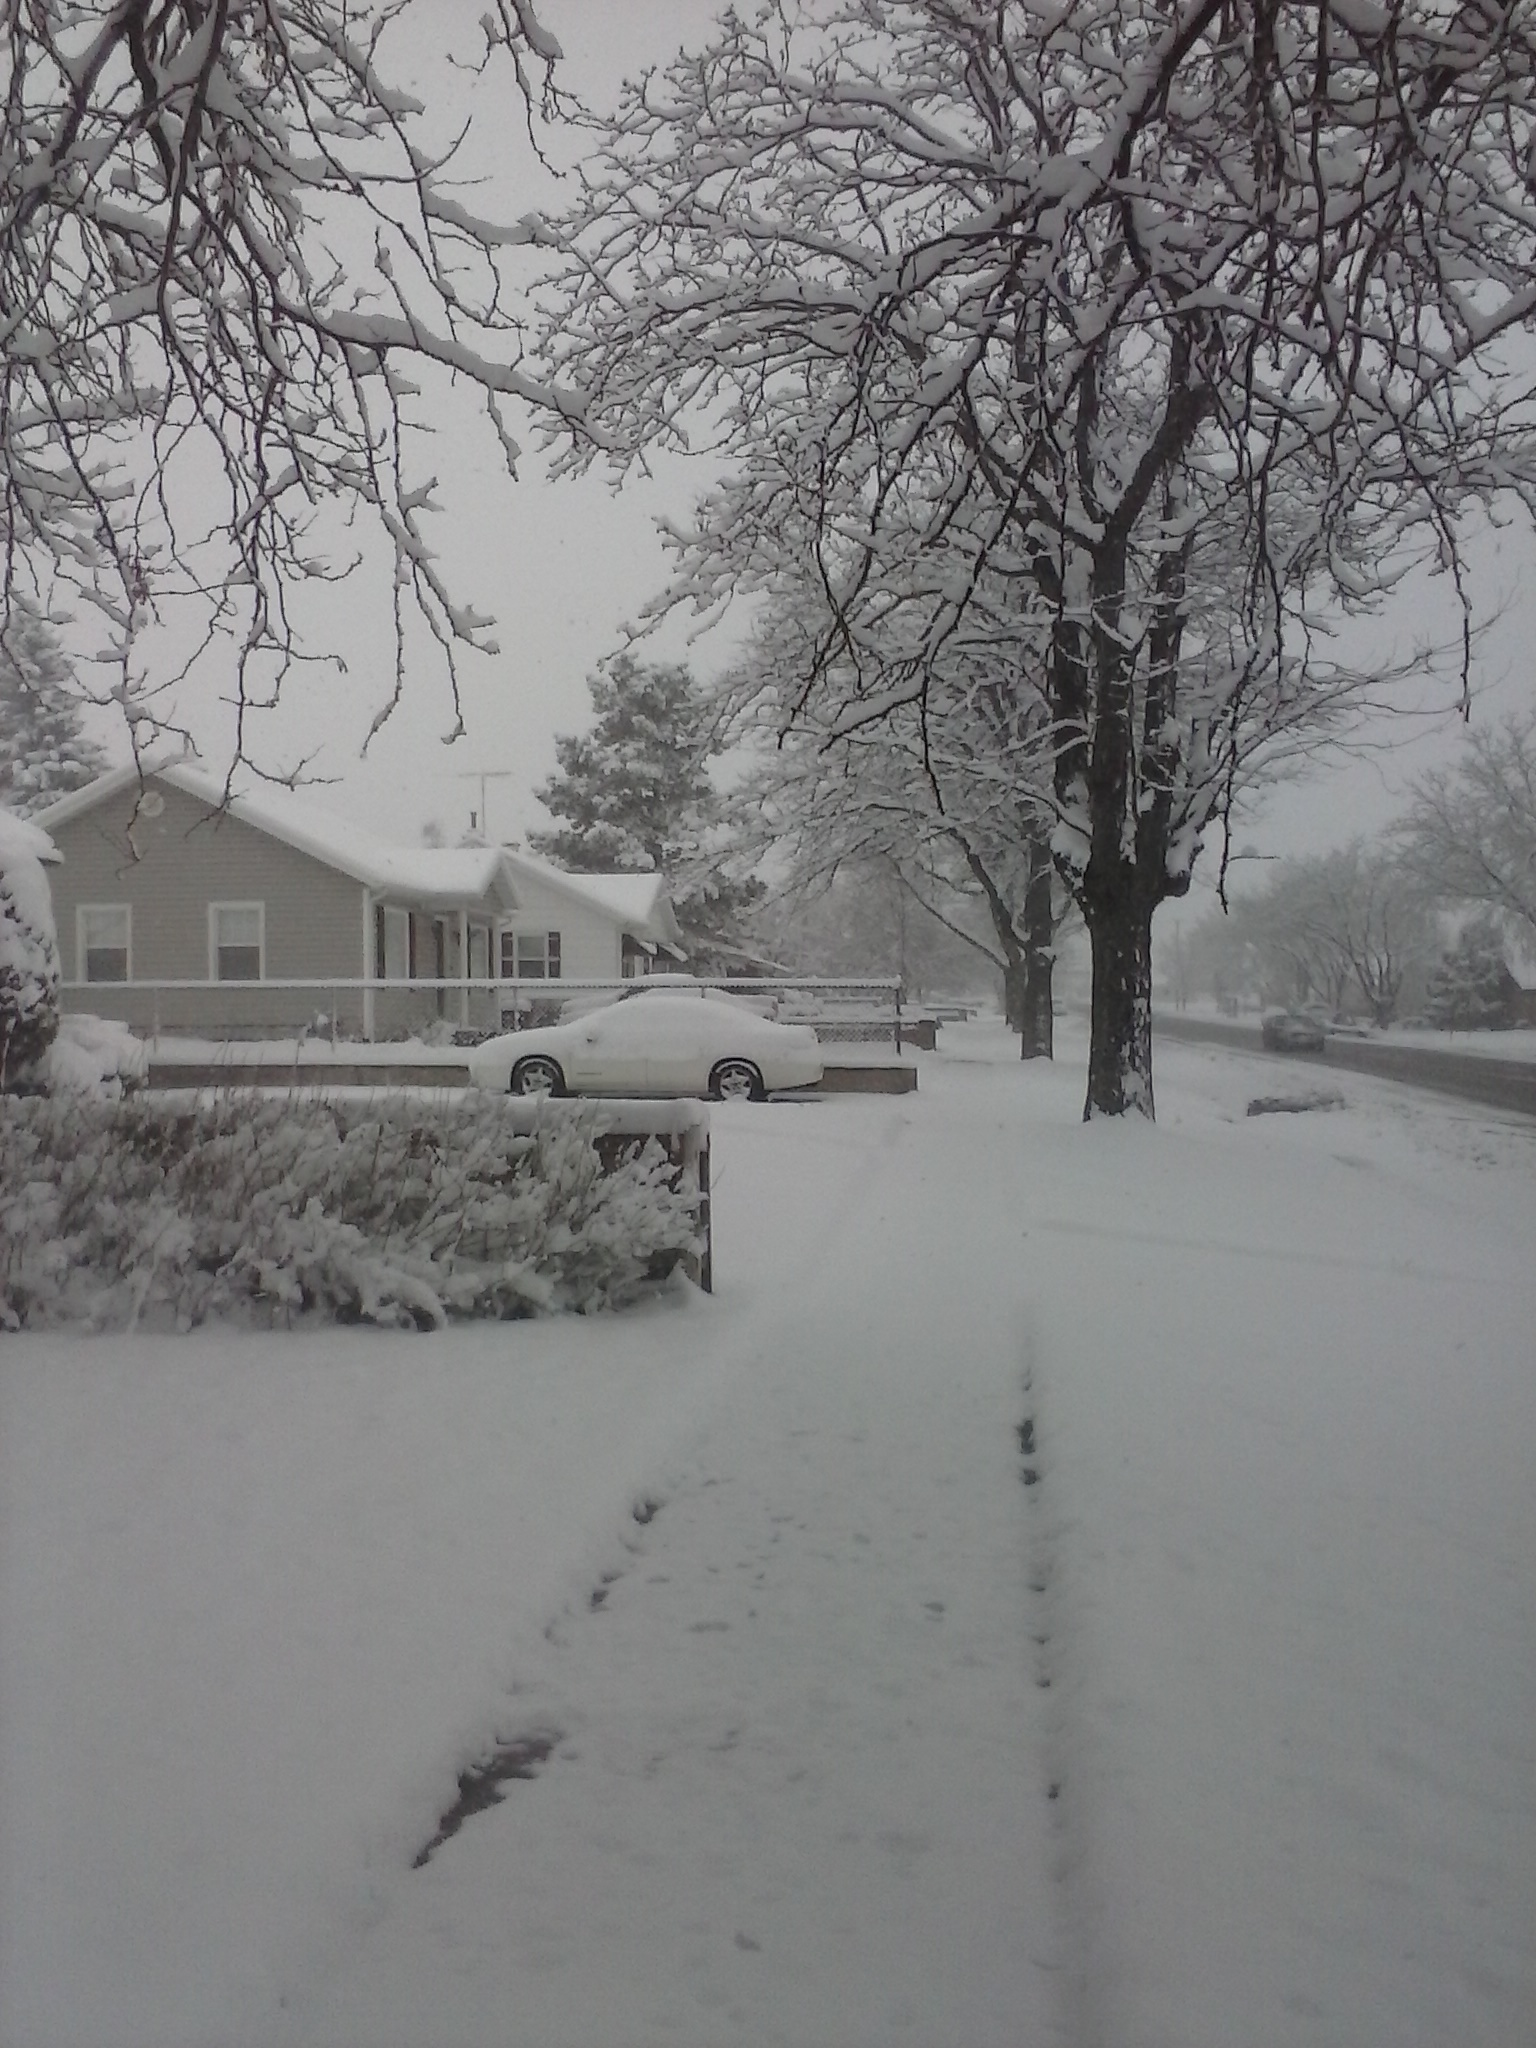 Winter snow, 300 West and 400 South, Cedar City, Utah, Feb. 22, 2015   Photo by Carin Miller, St. George News